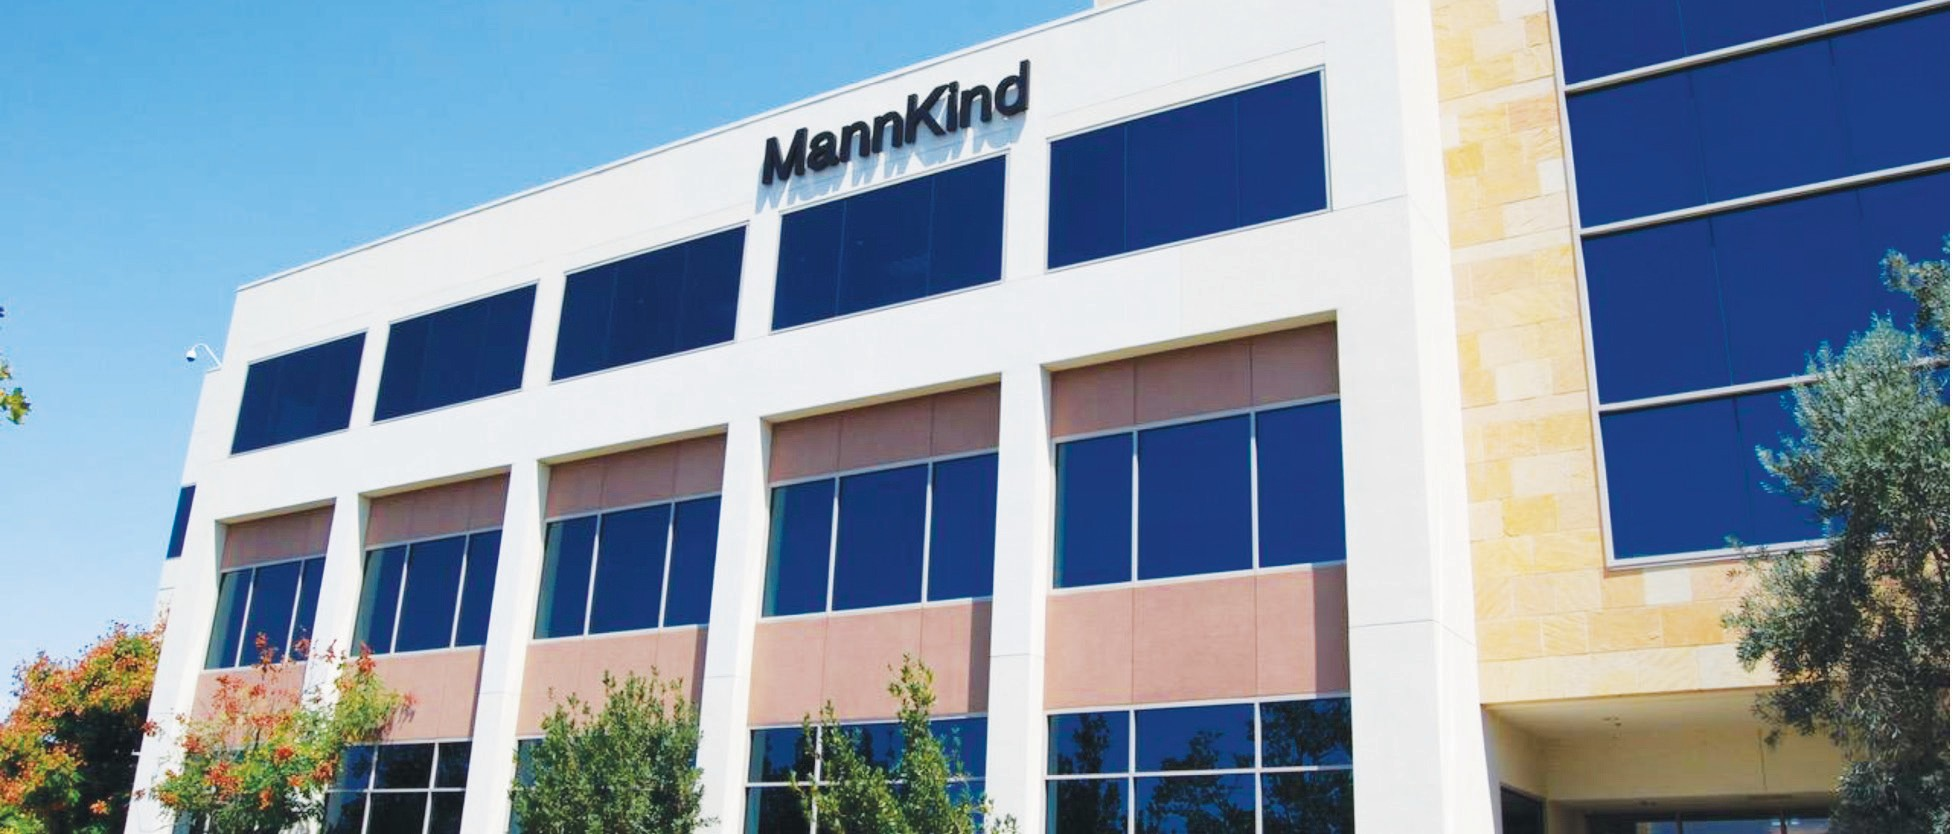 NEW HOME—MannKind Corporation, maker of the insulin inhalation powder Afrezza, moved into this new headquarters building in Westlake.